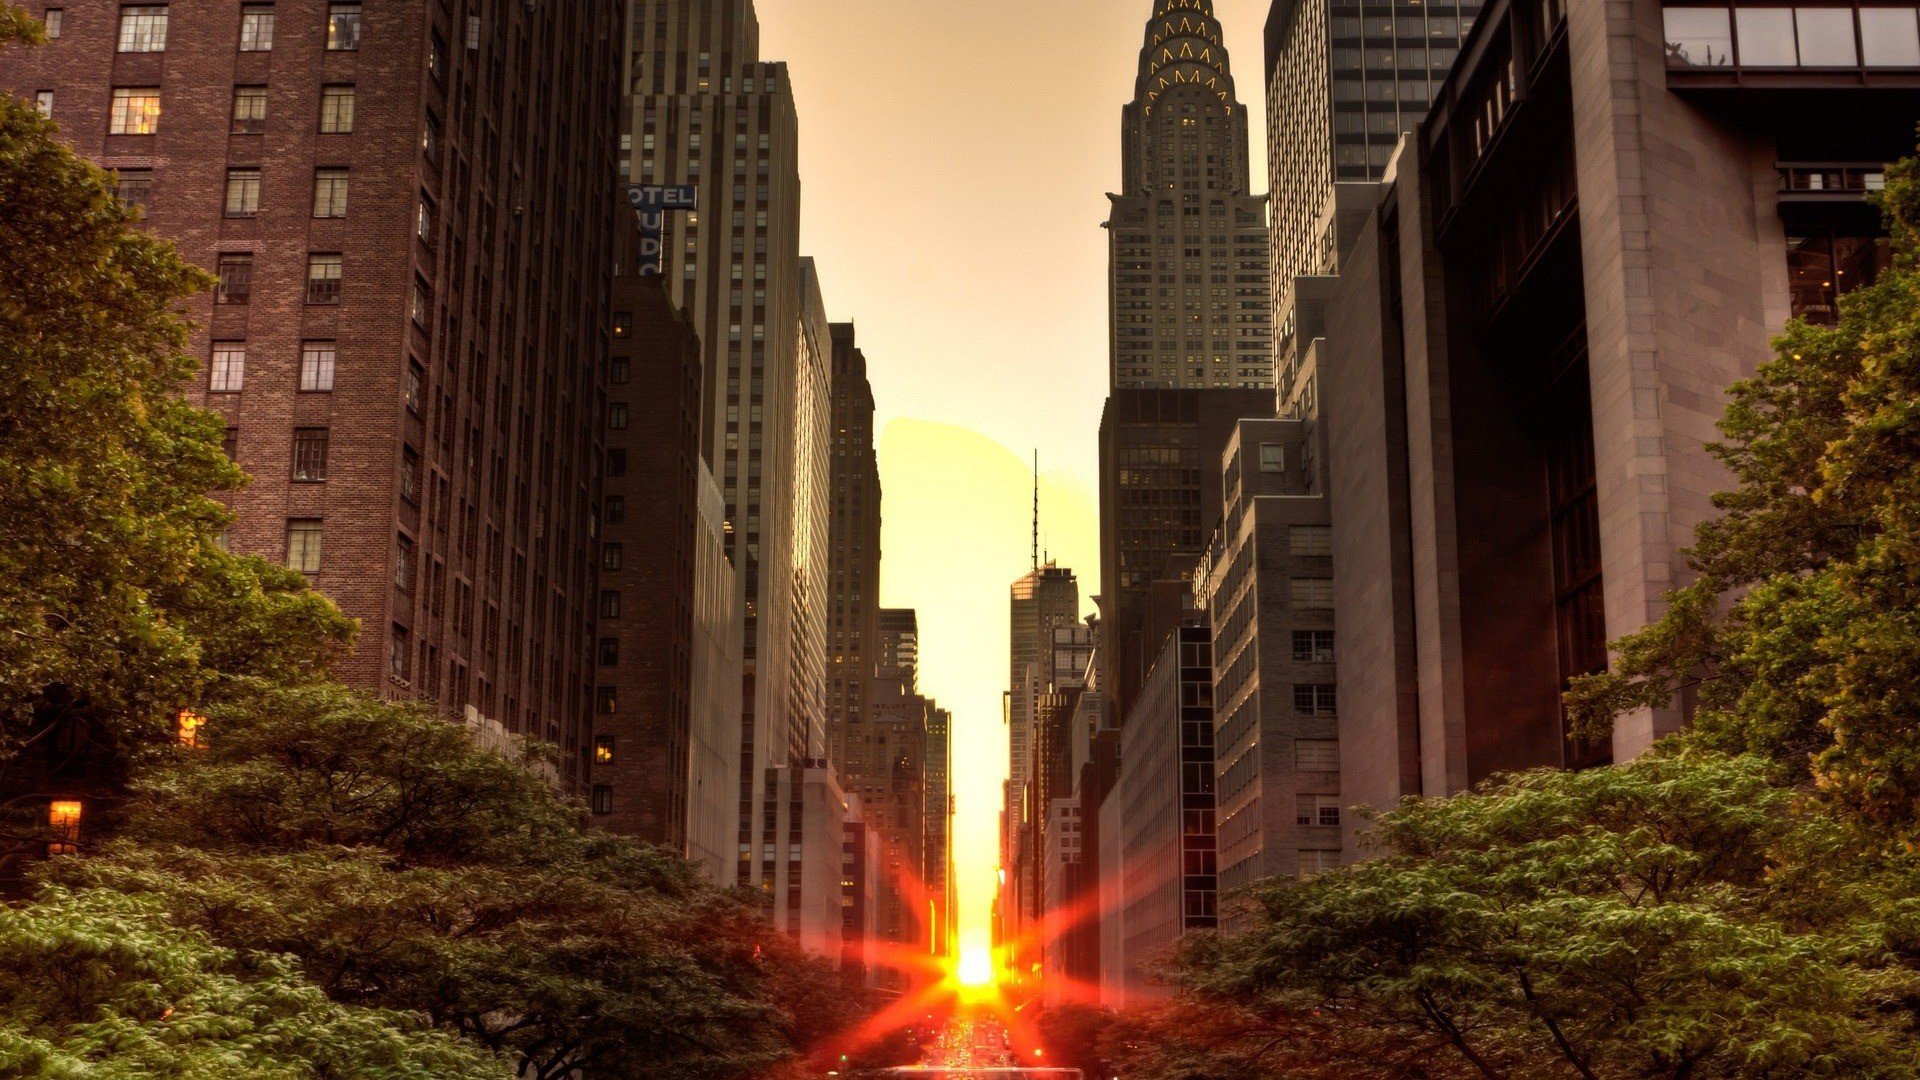 Set among the skyscrapers on the streets of New York